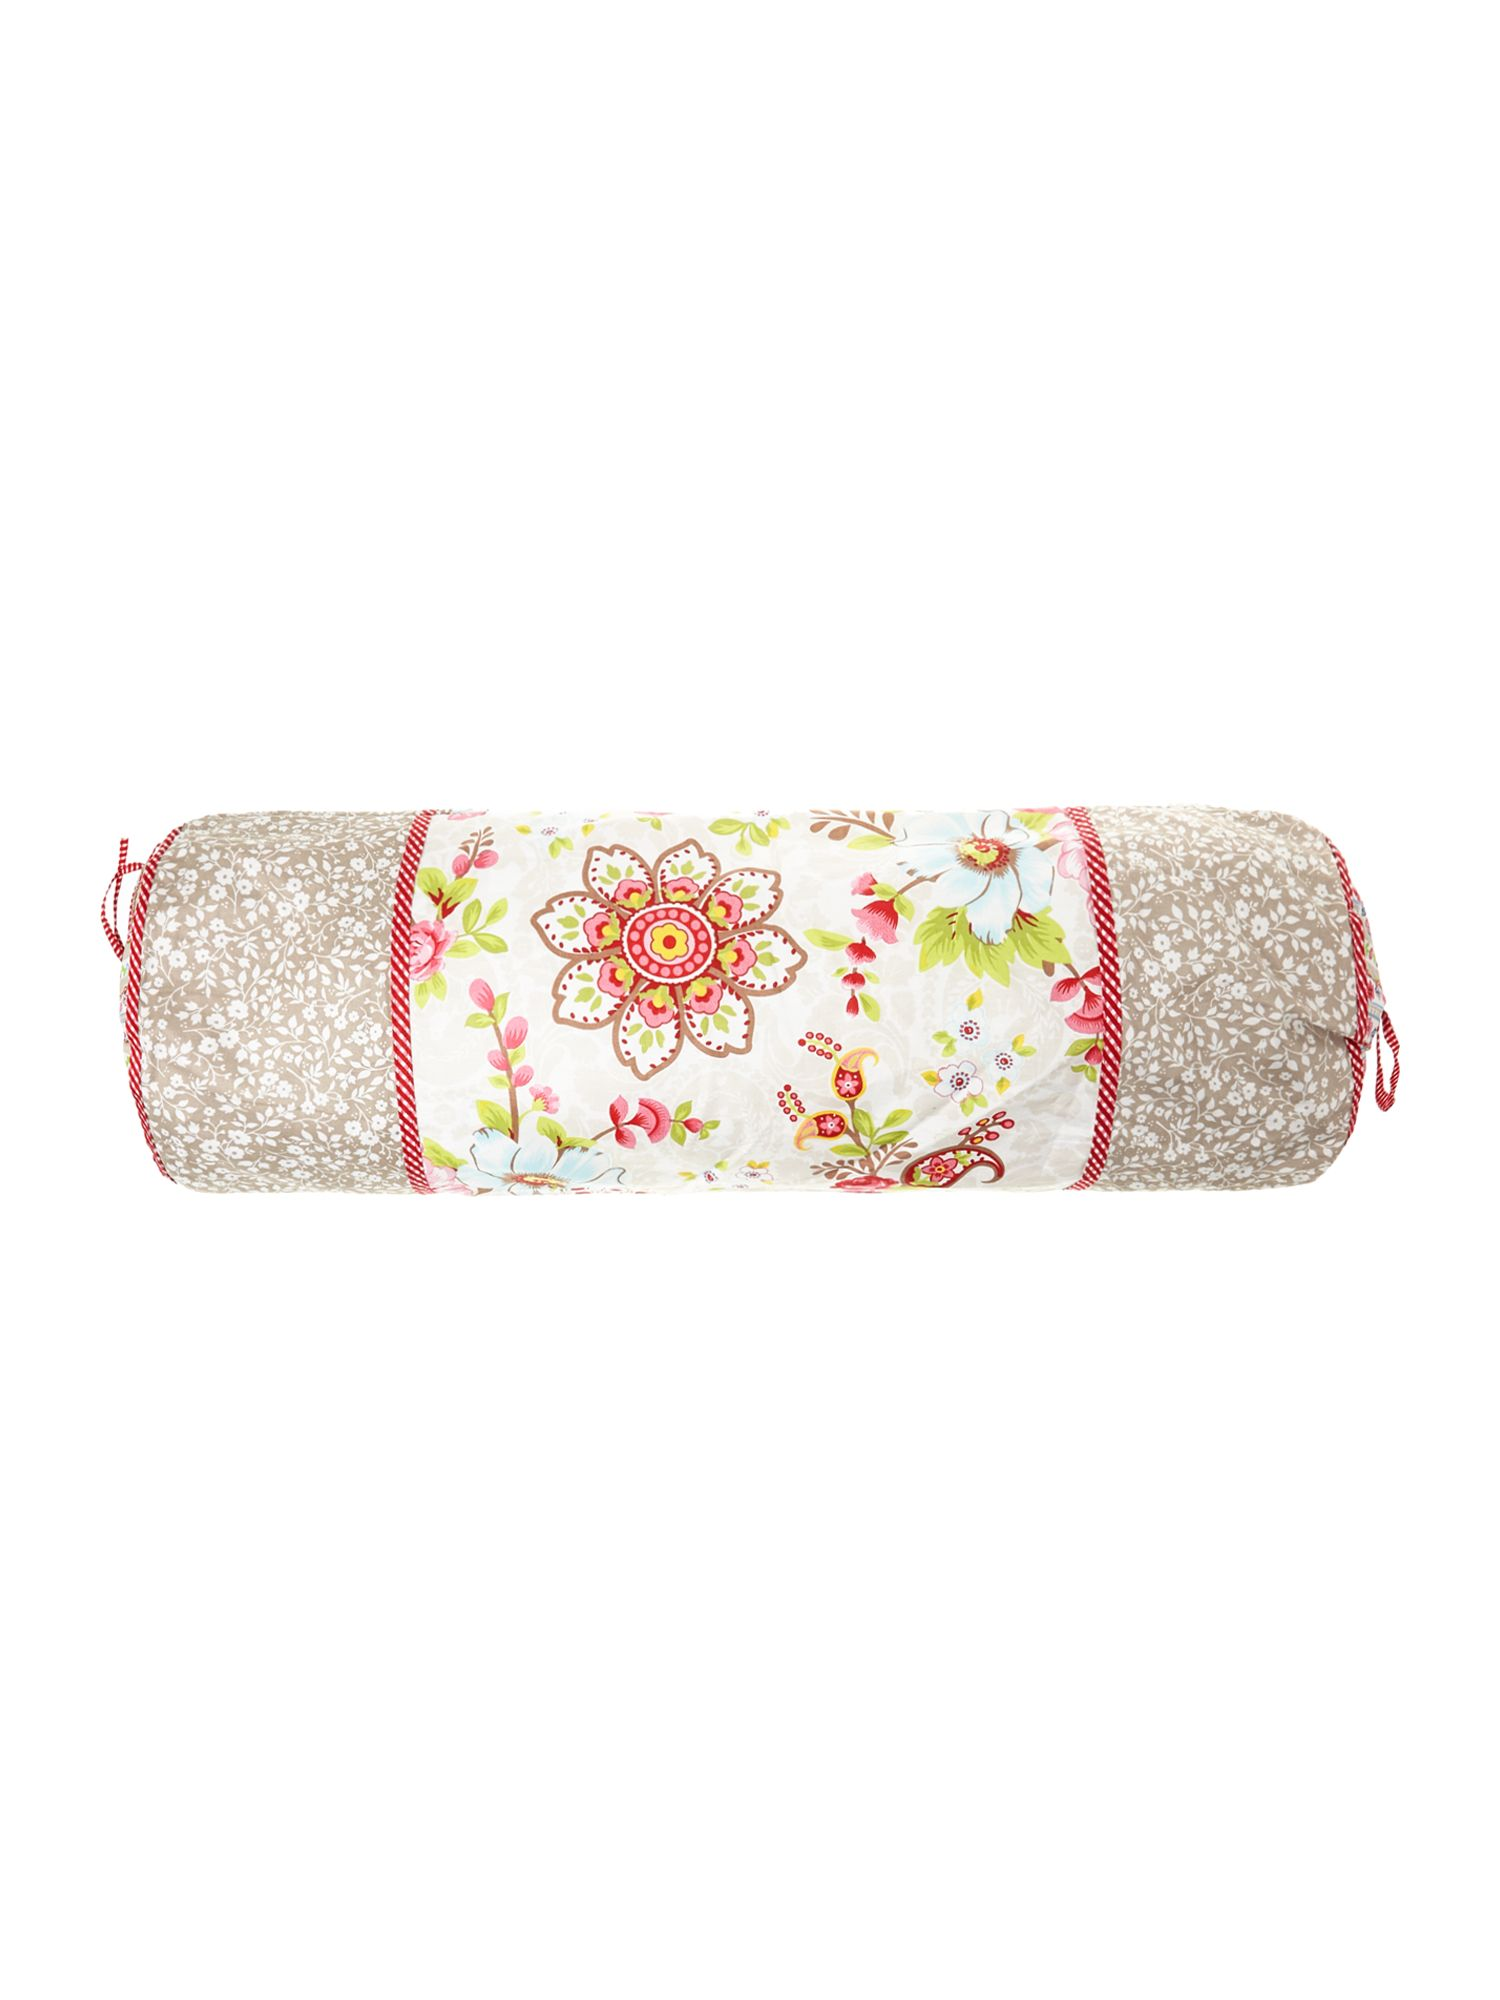 Flowers in the Mix bolster cushion